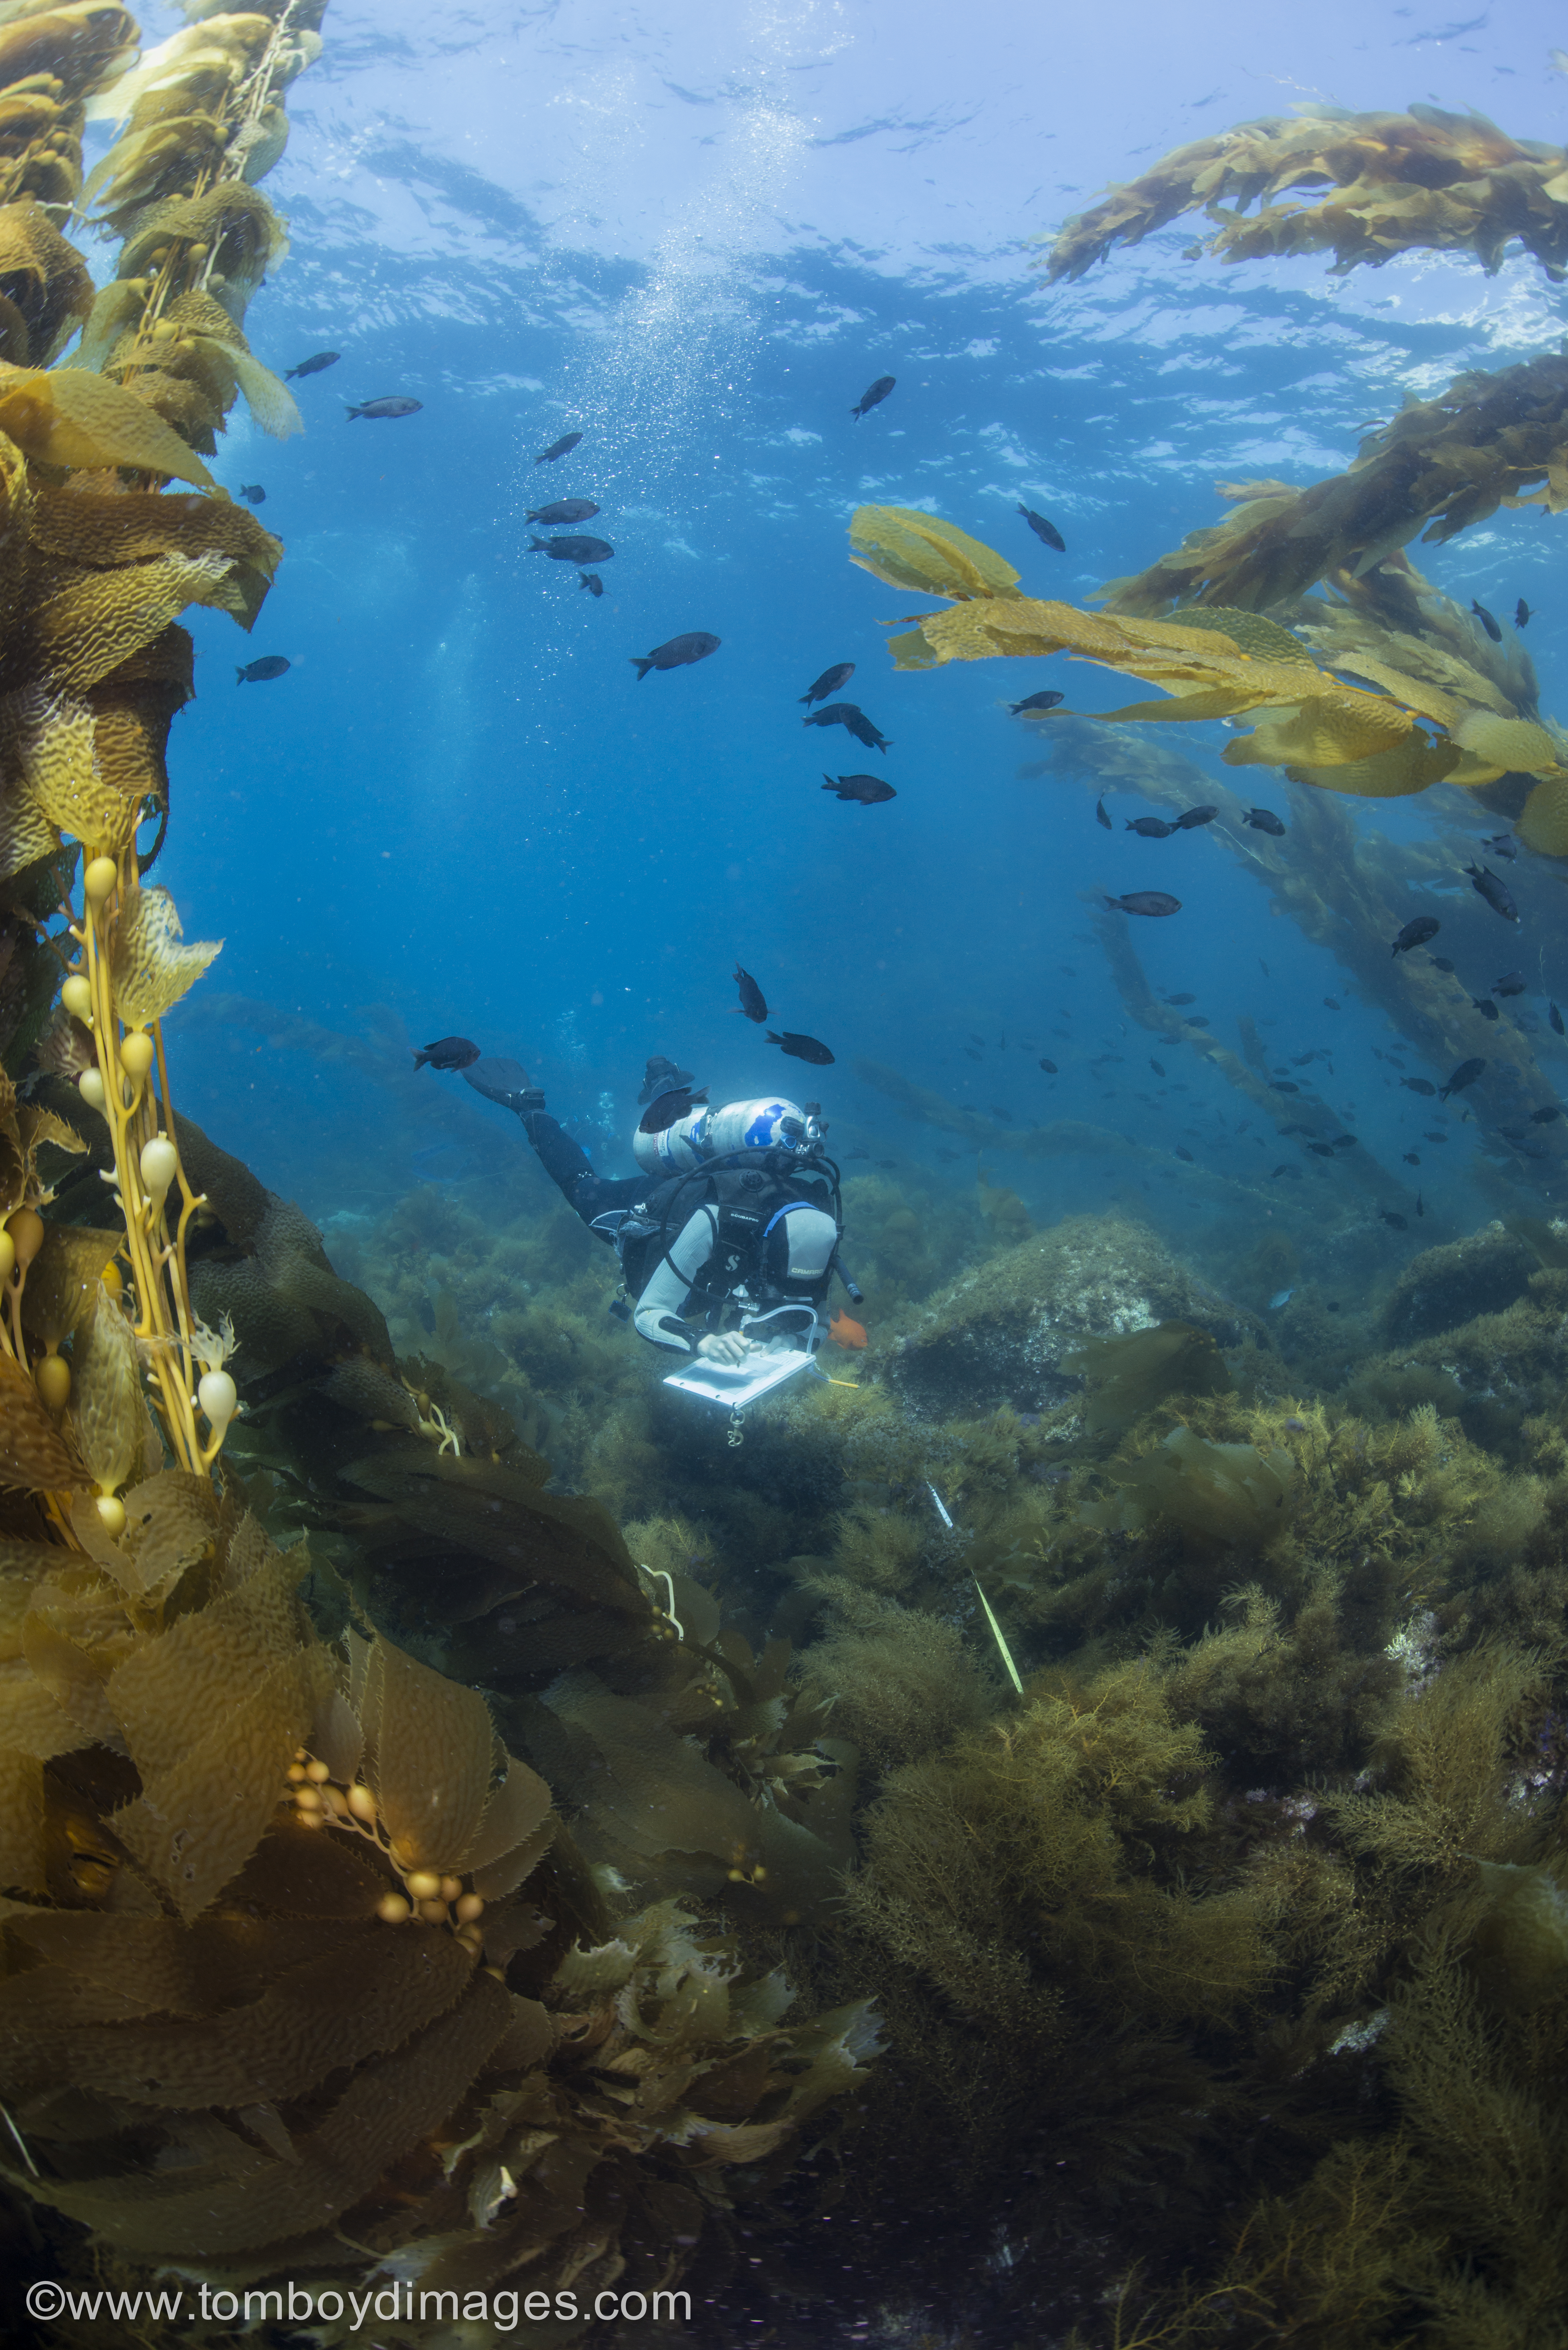 scuba diver collecting data surrounded by fish and kelp on a rocky reef